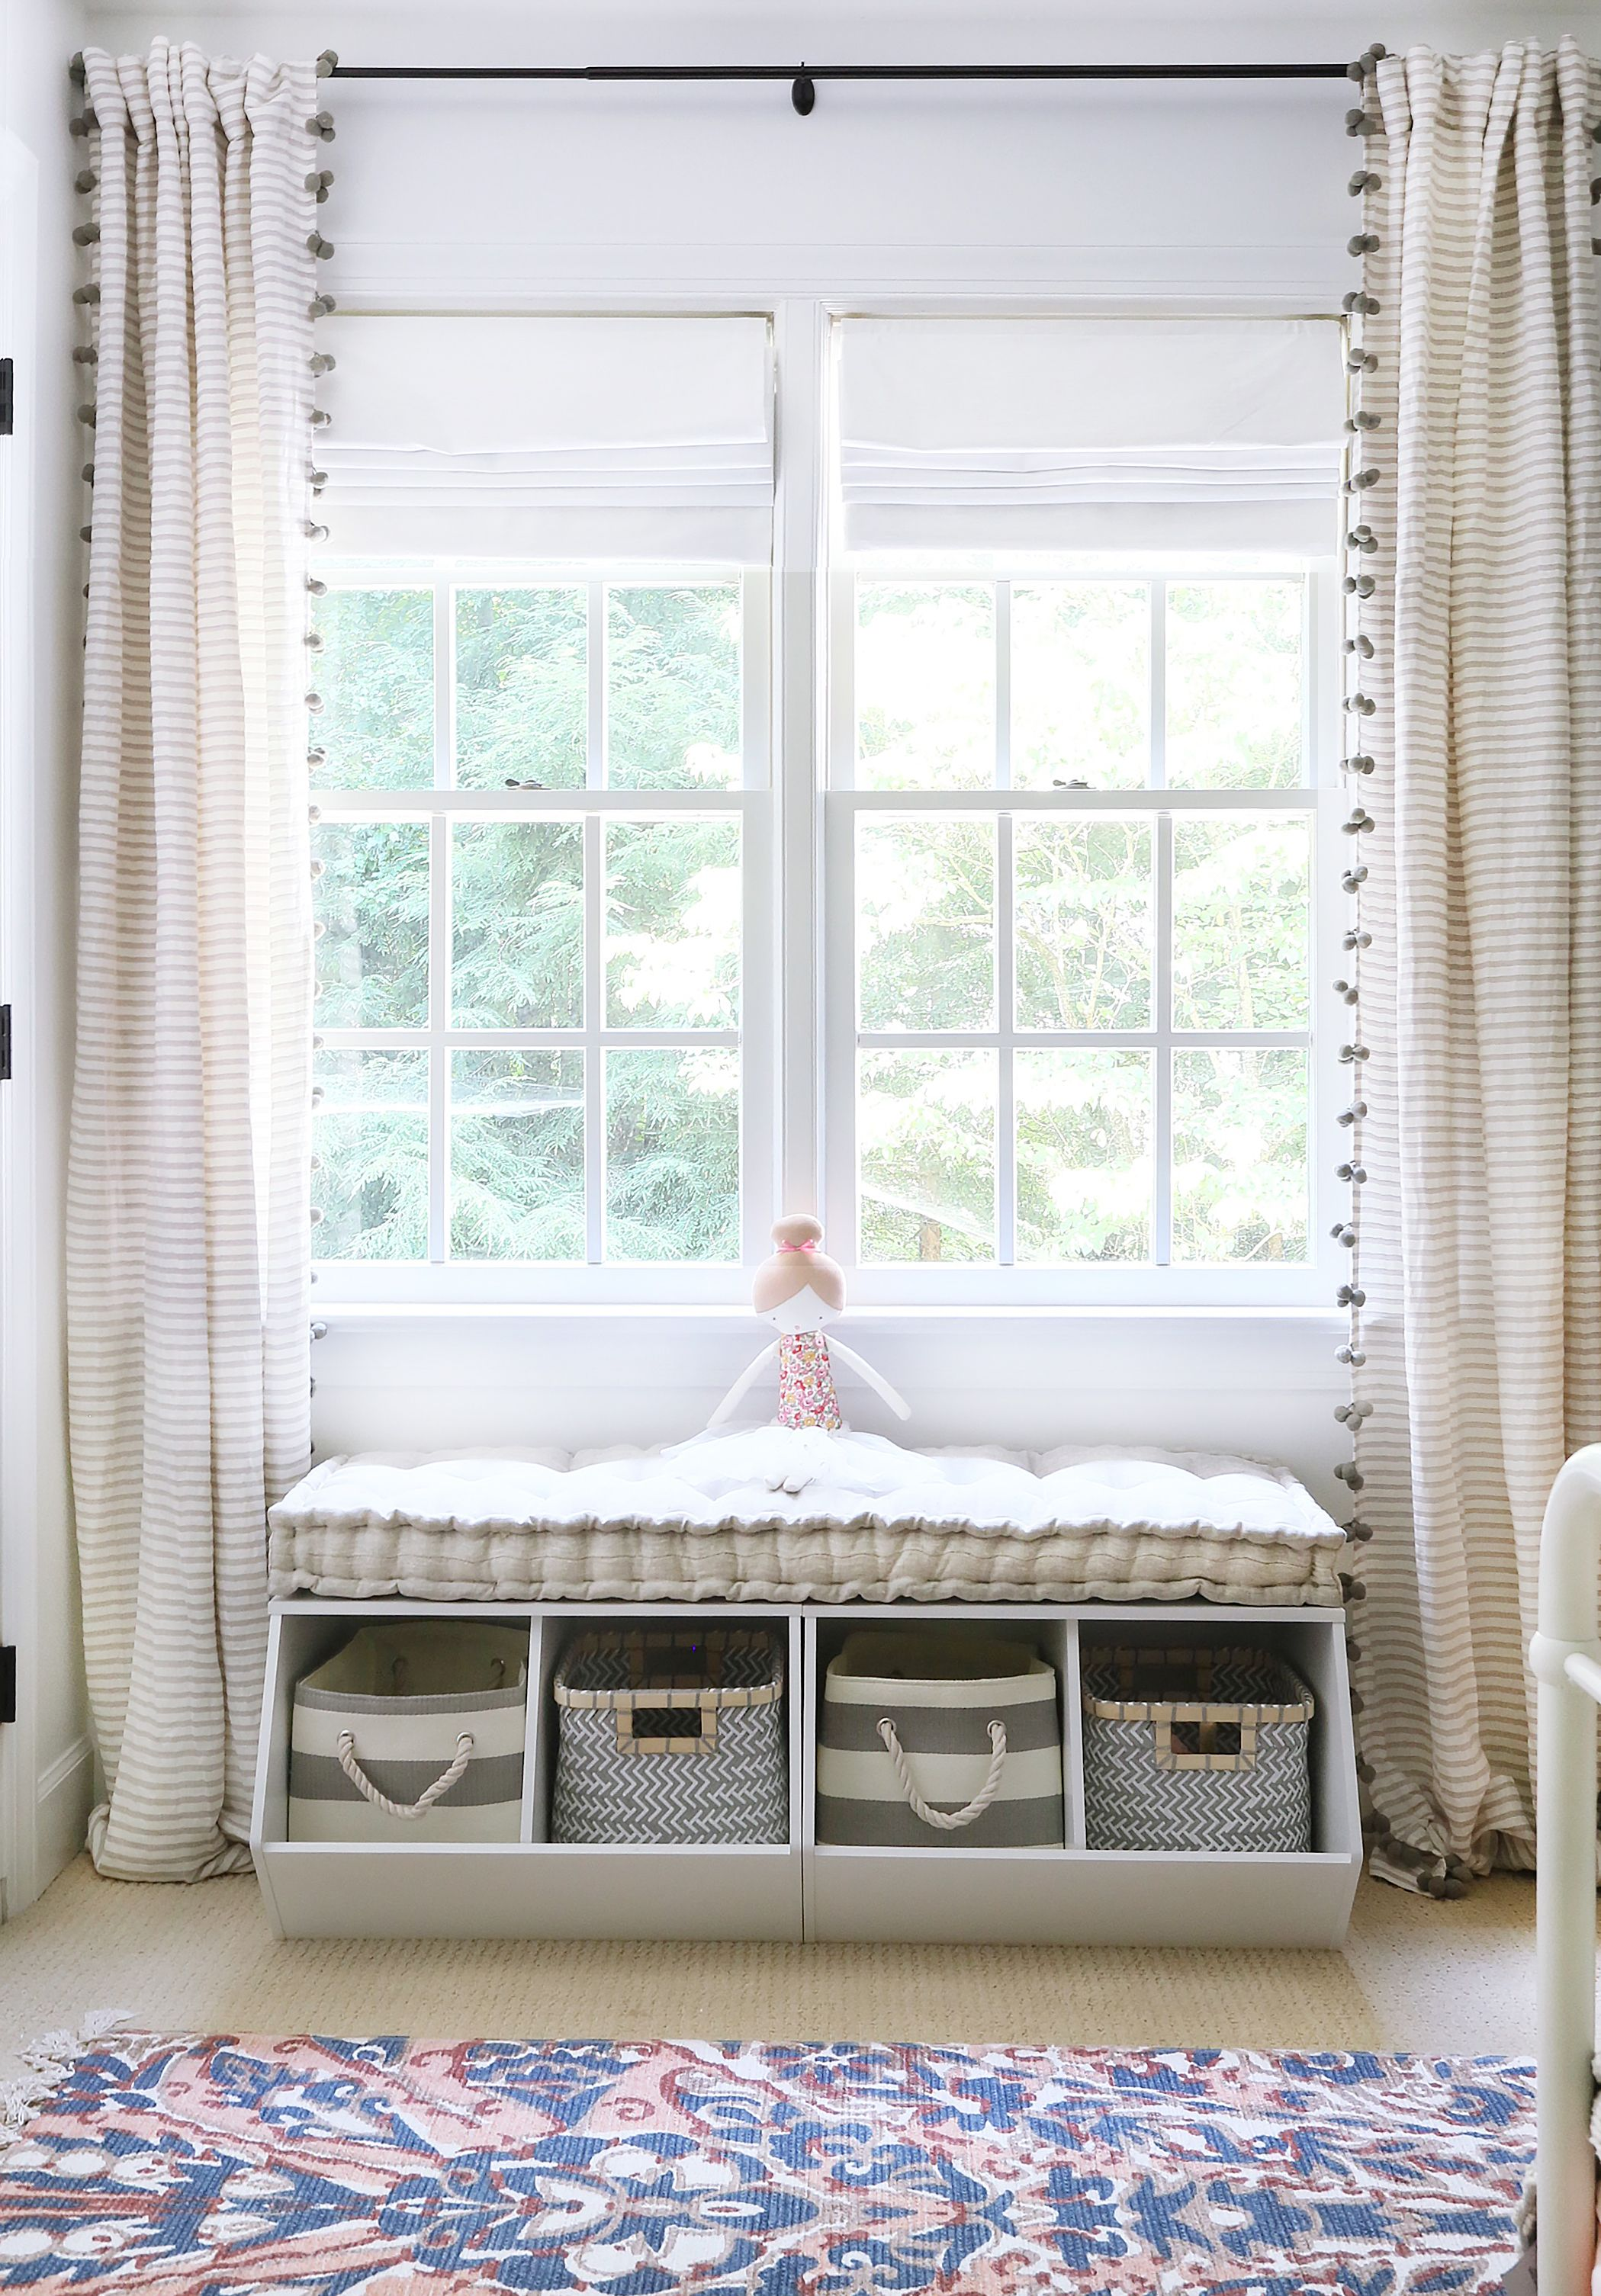 Sensational In The Big Kid Room With Sunny Circle Studio Window Seat Short Links Chair Design For Home Short Linksinfo